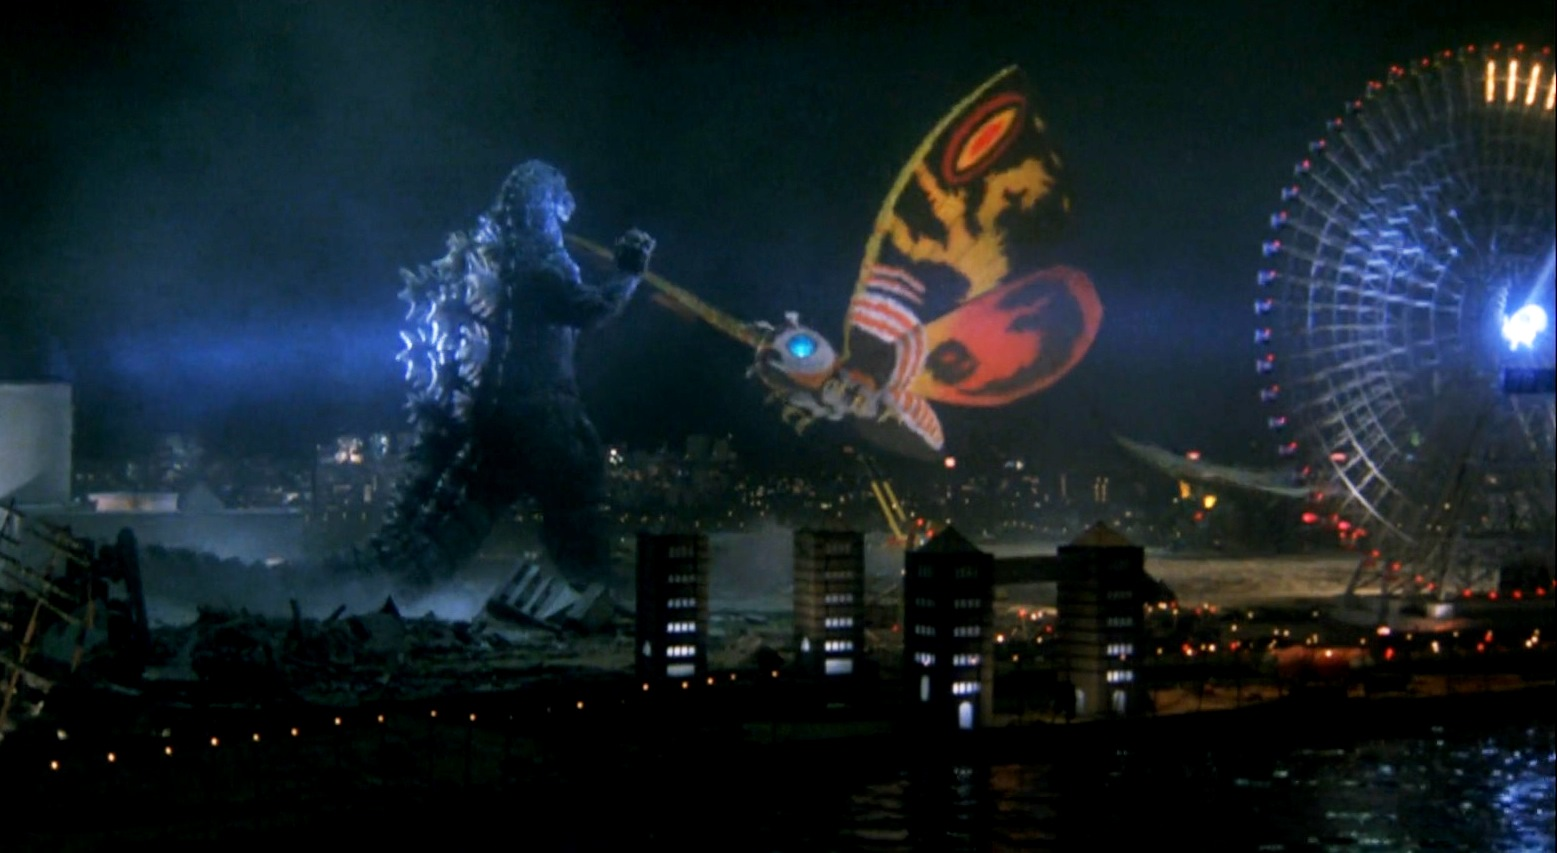 Godzilla and Mohtra battle in Godzilla and Mothra: The Battle for Earth (1992)